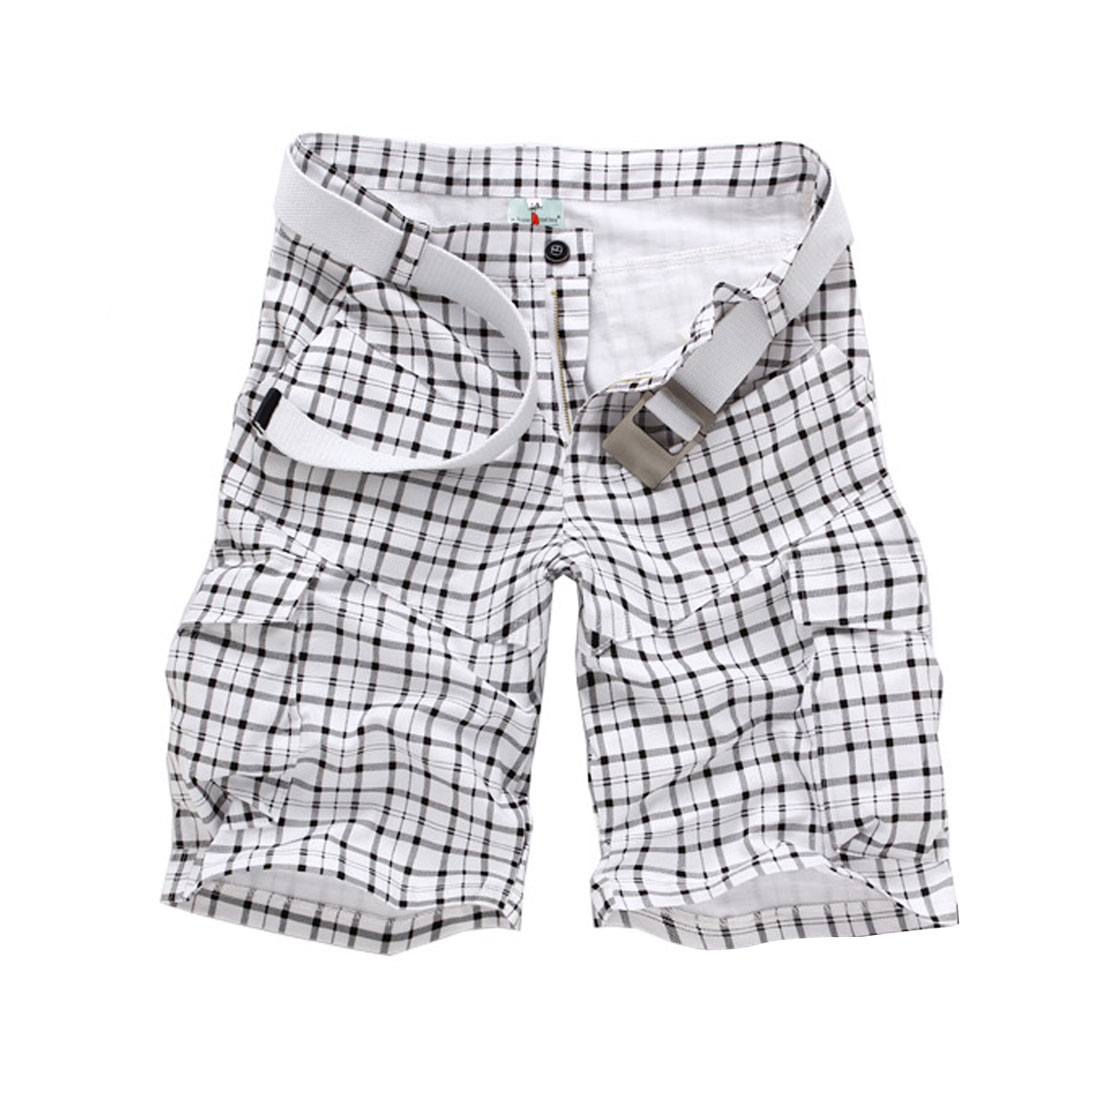 Men Waistband Loop Zip Closure Slant Pockets Plaids Hip Pockets Short Pants White W34